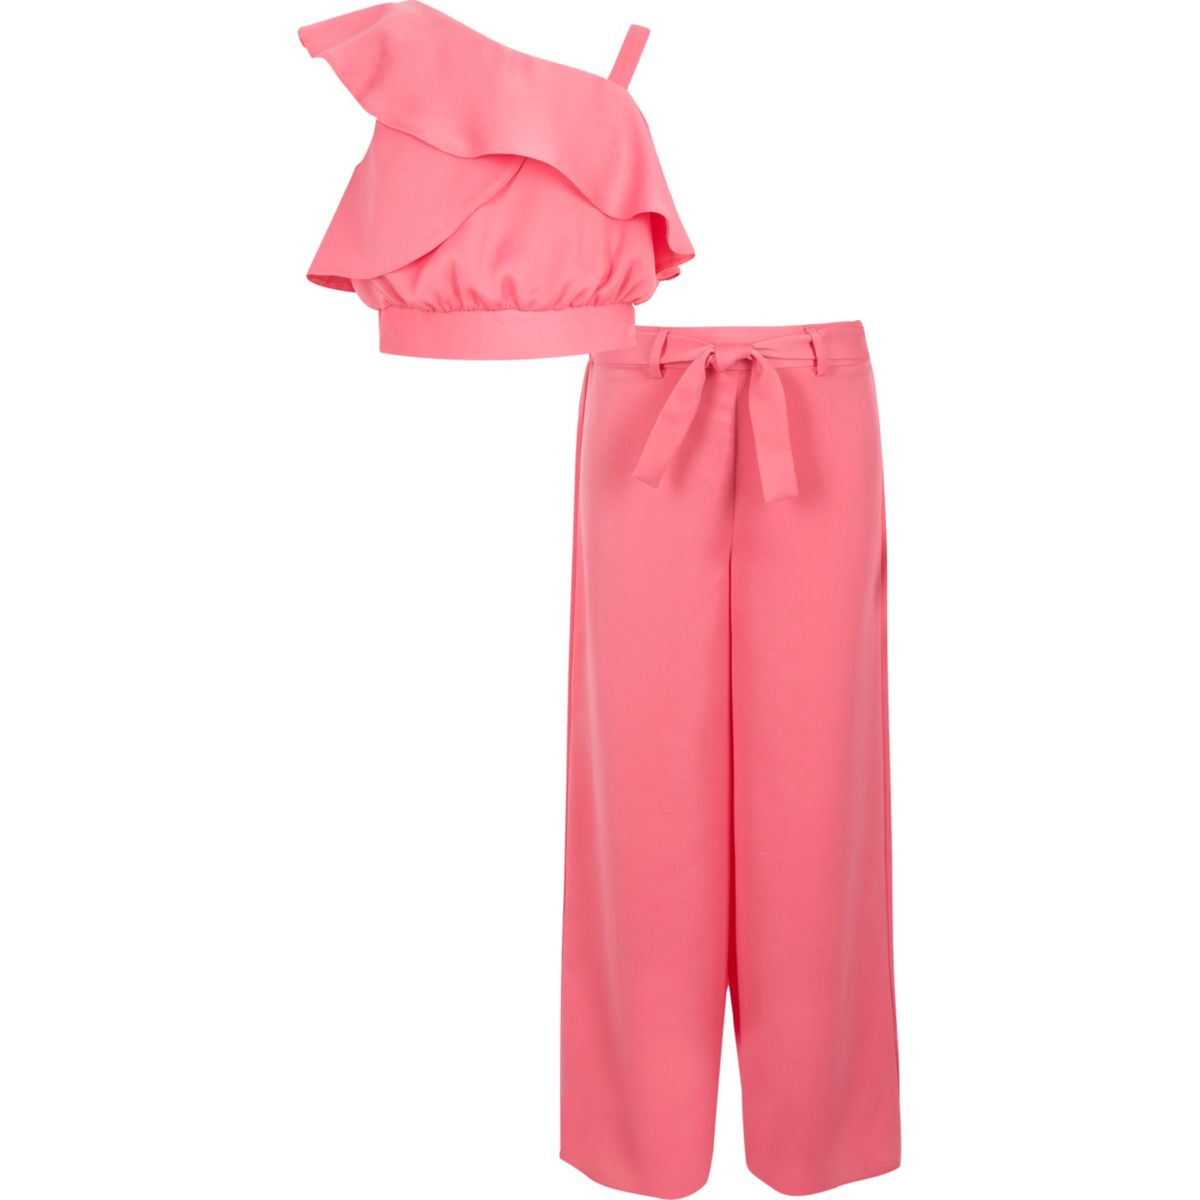 Girls pink satin crop top and palazzos outfit